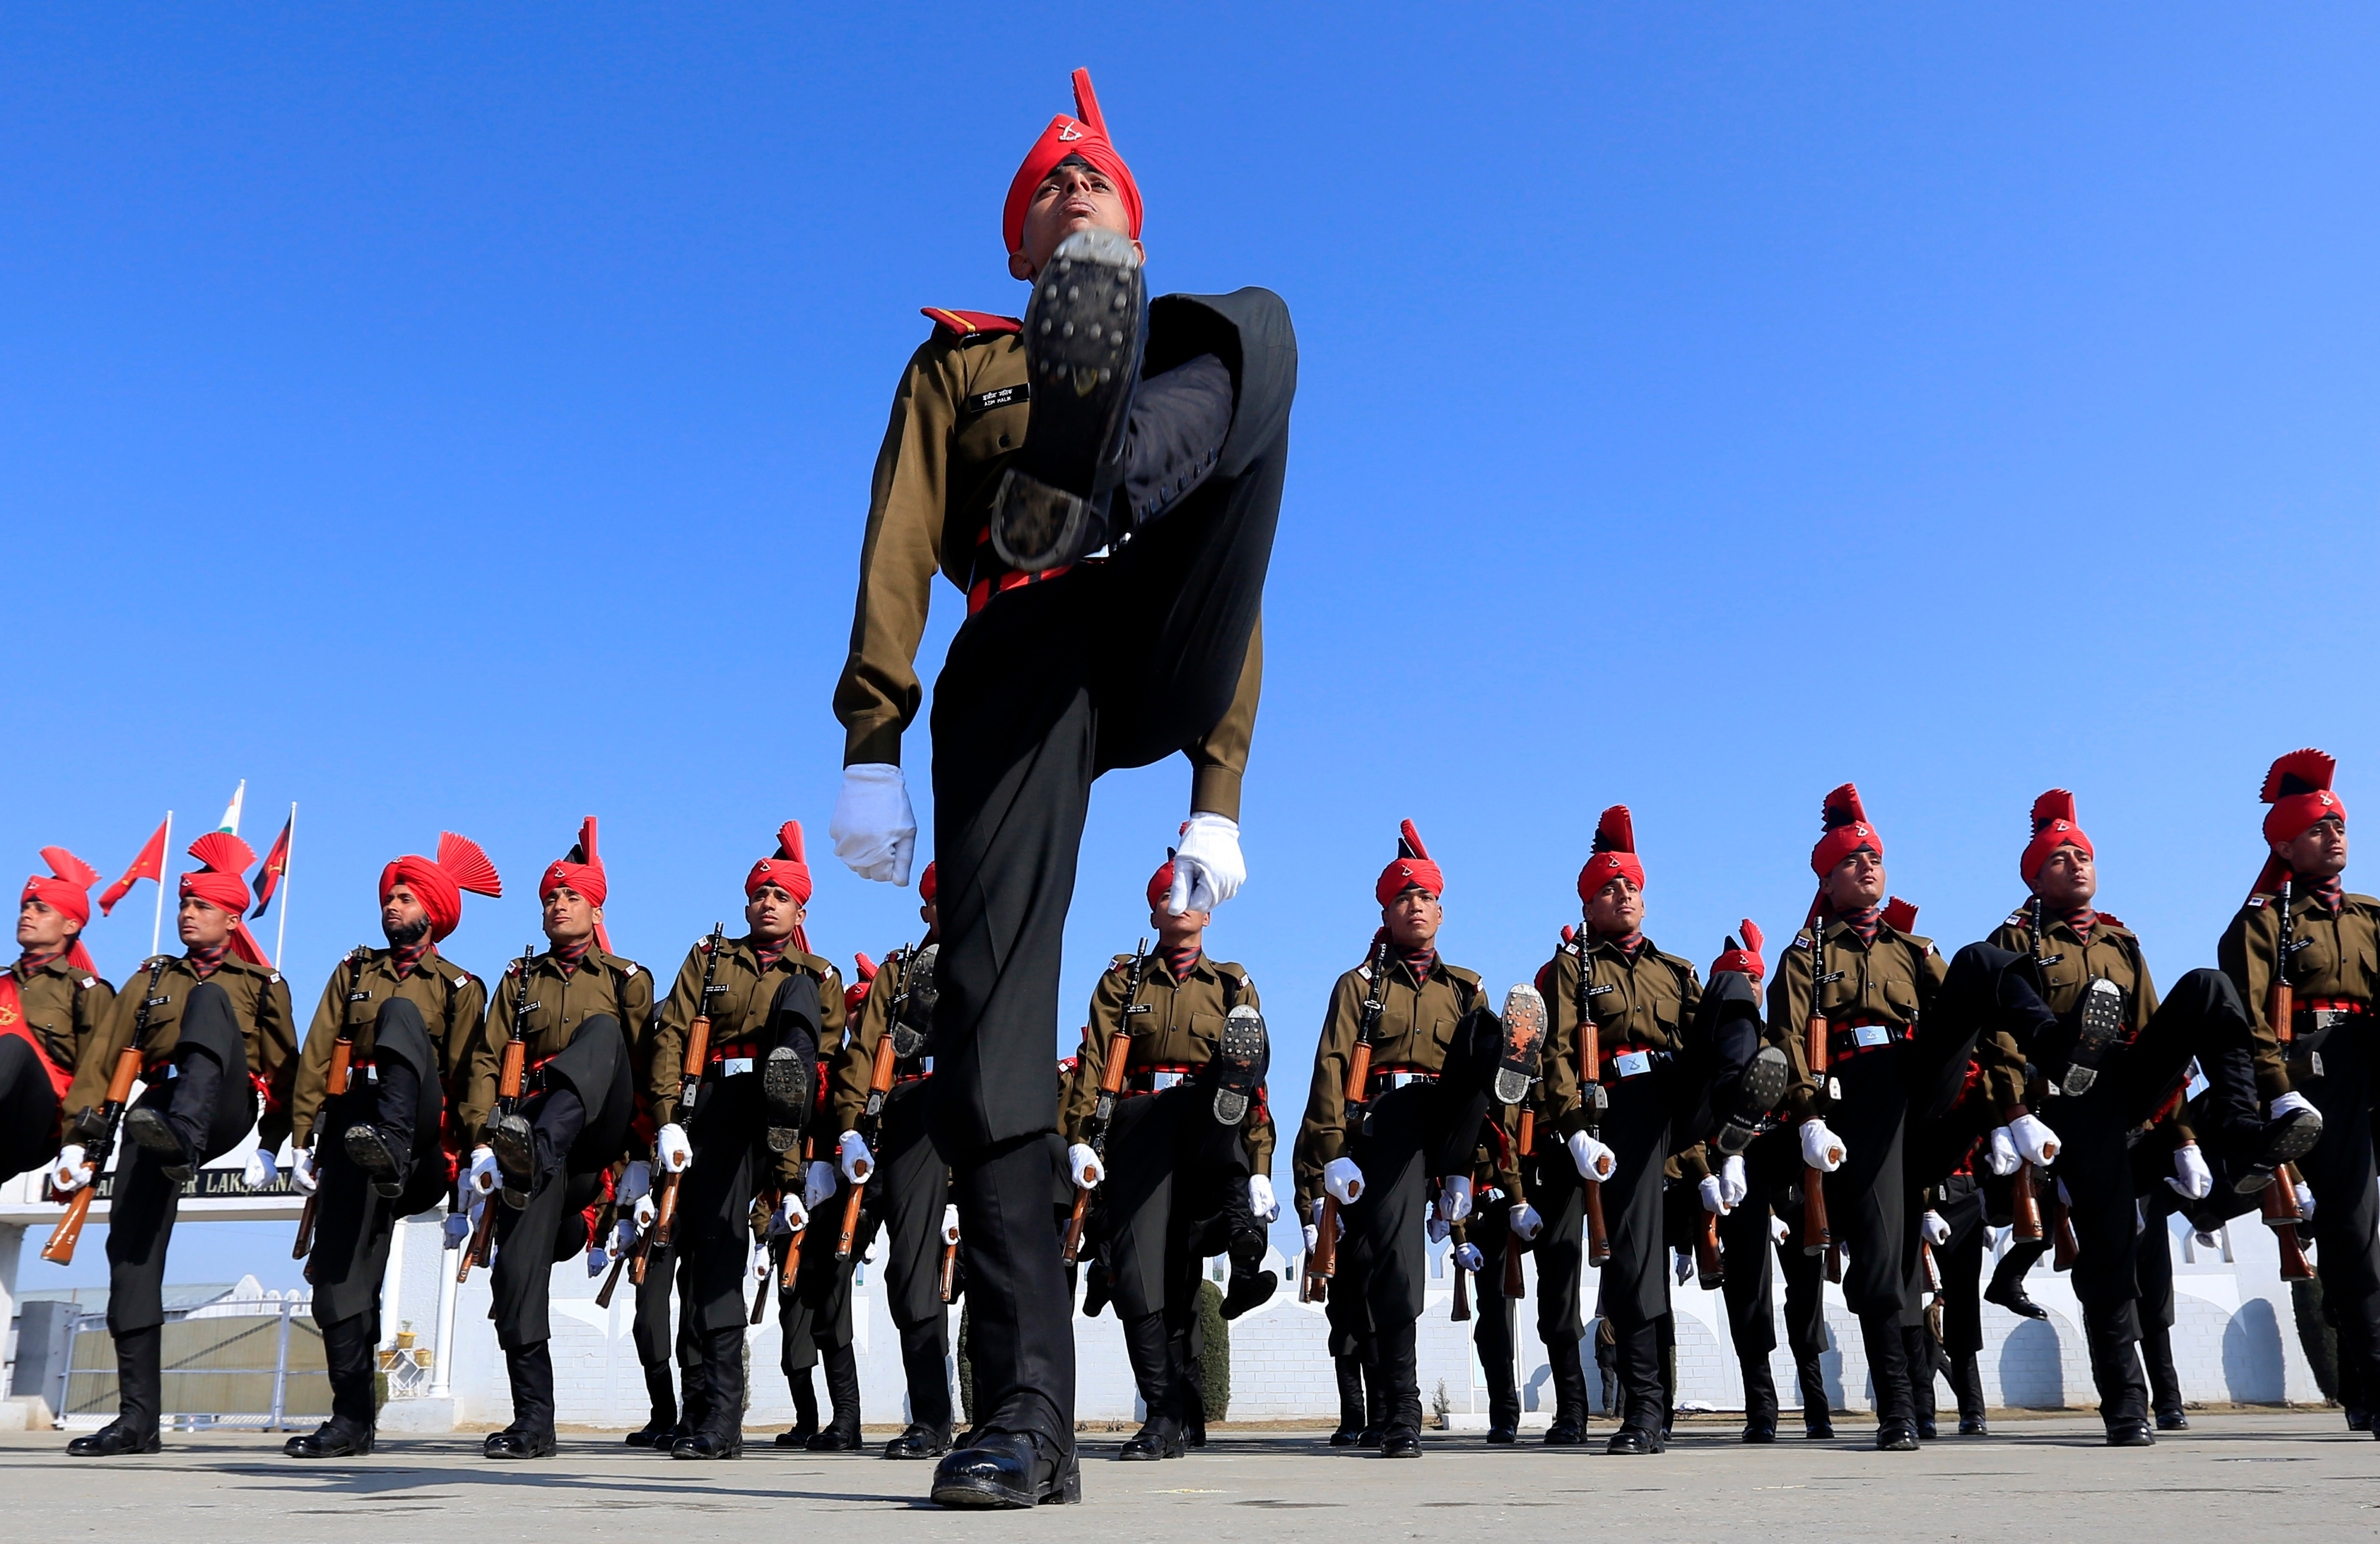 Soldiers of the Jammu and Kashmir Light Infantry march during their commencement parade at a military base on the outskirts of Srinagar, India, Saturday, 2014.